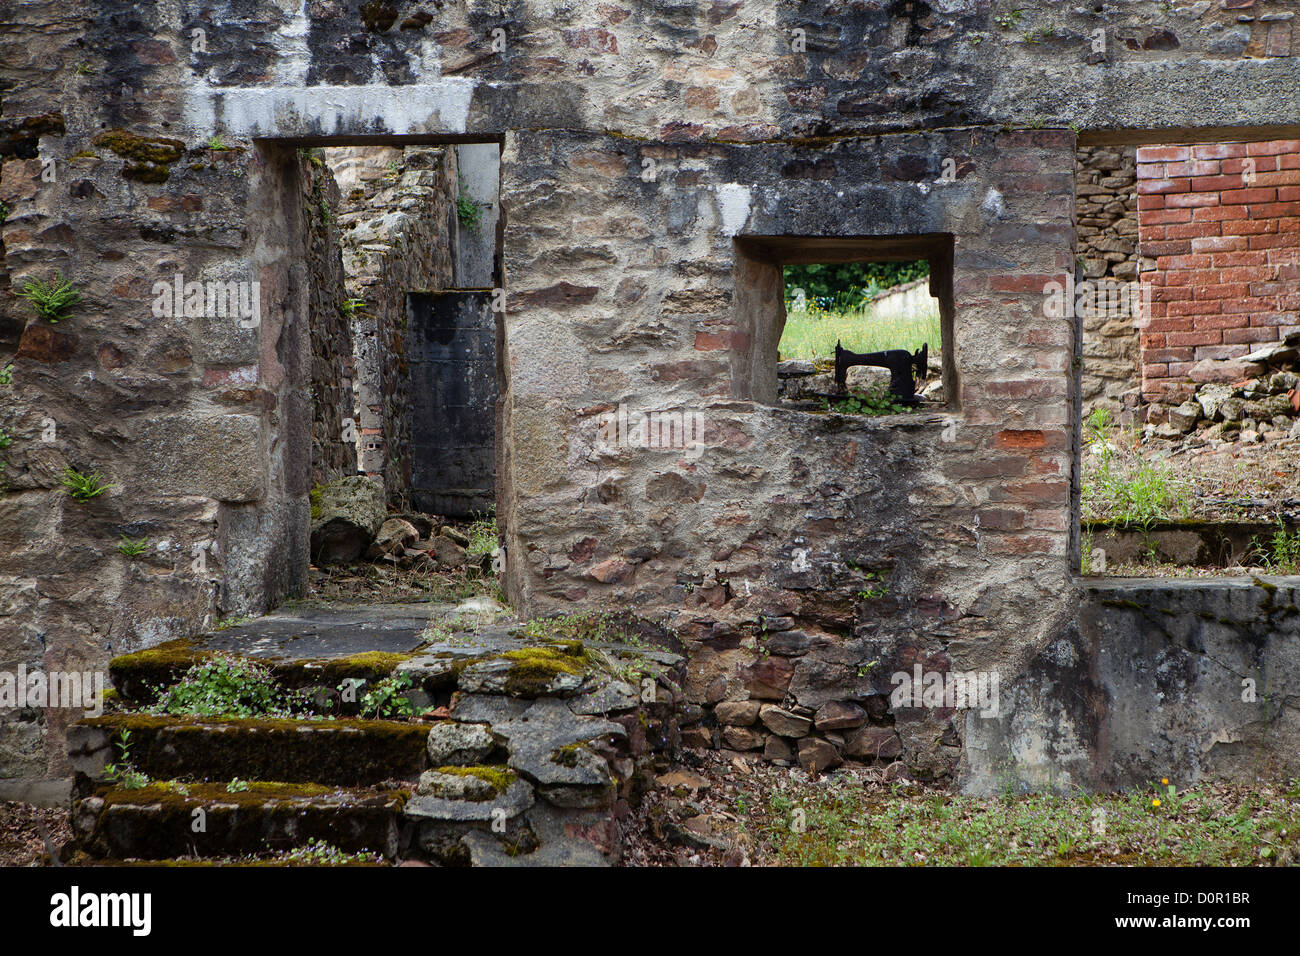 the ruins of the Nazi atrocity of 10th June 1944 at Oradour sur Glane, the Limousin, France - Stock Image